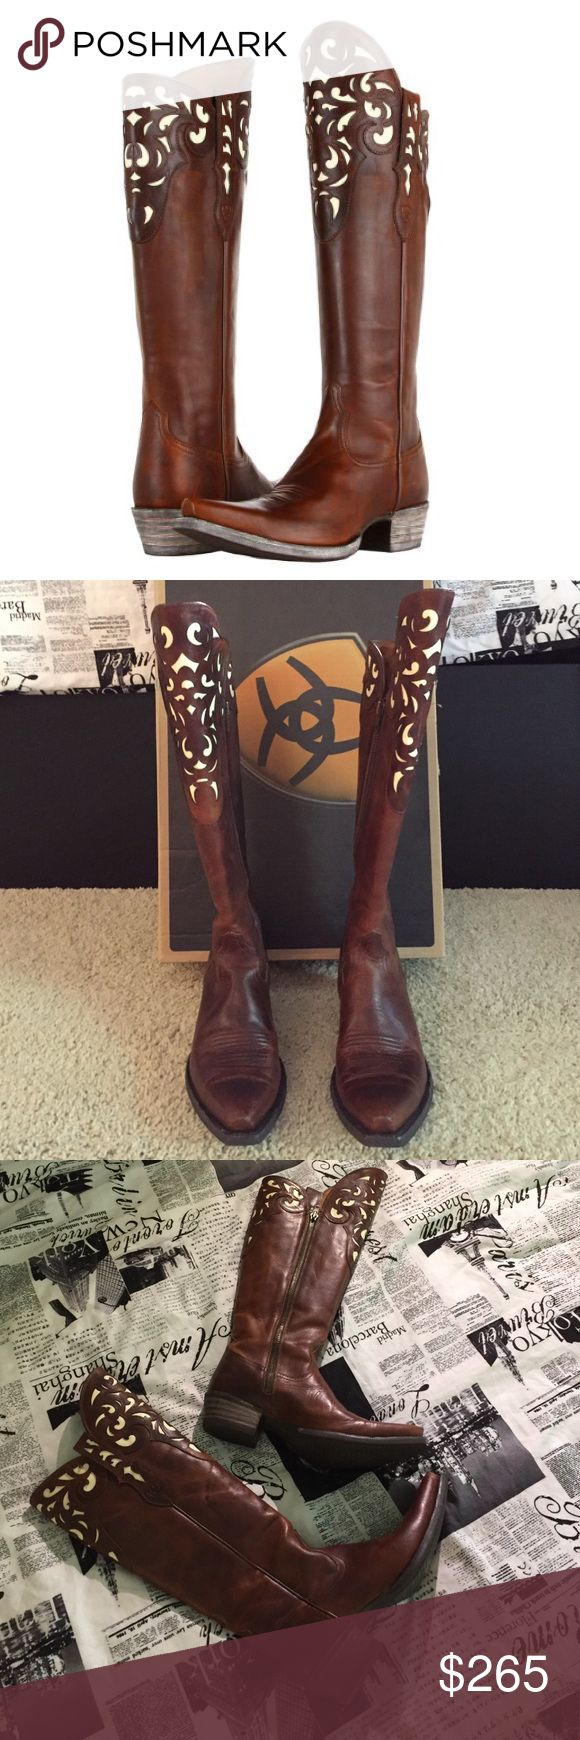 Ariat Women's Boots SALE Worn one time. Purchased at Cavenders. Comes with box and all original packaging Ariat Shoes